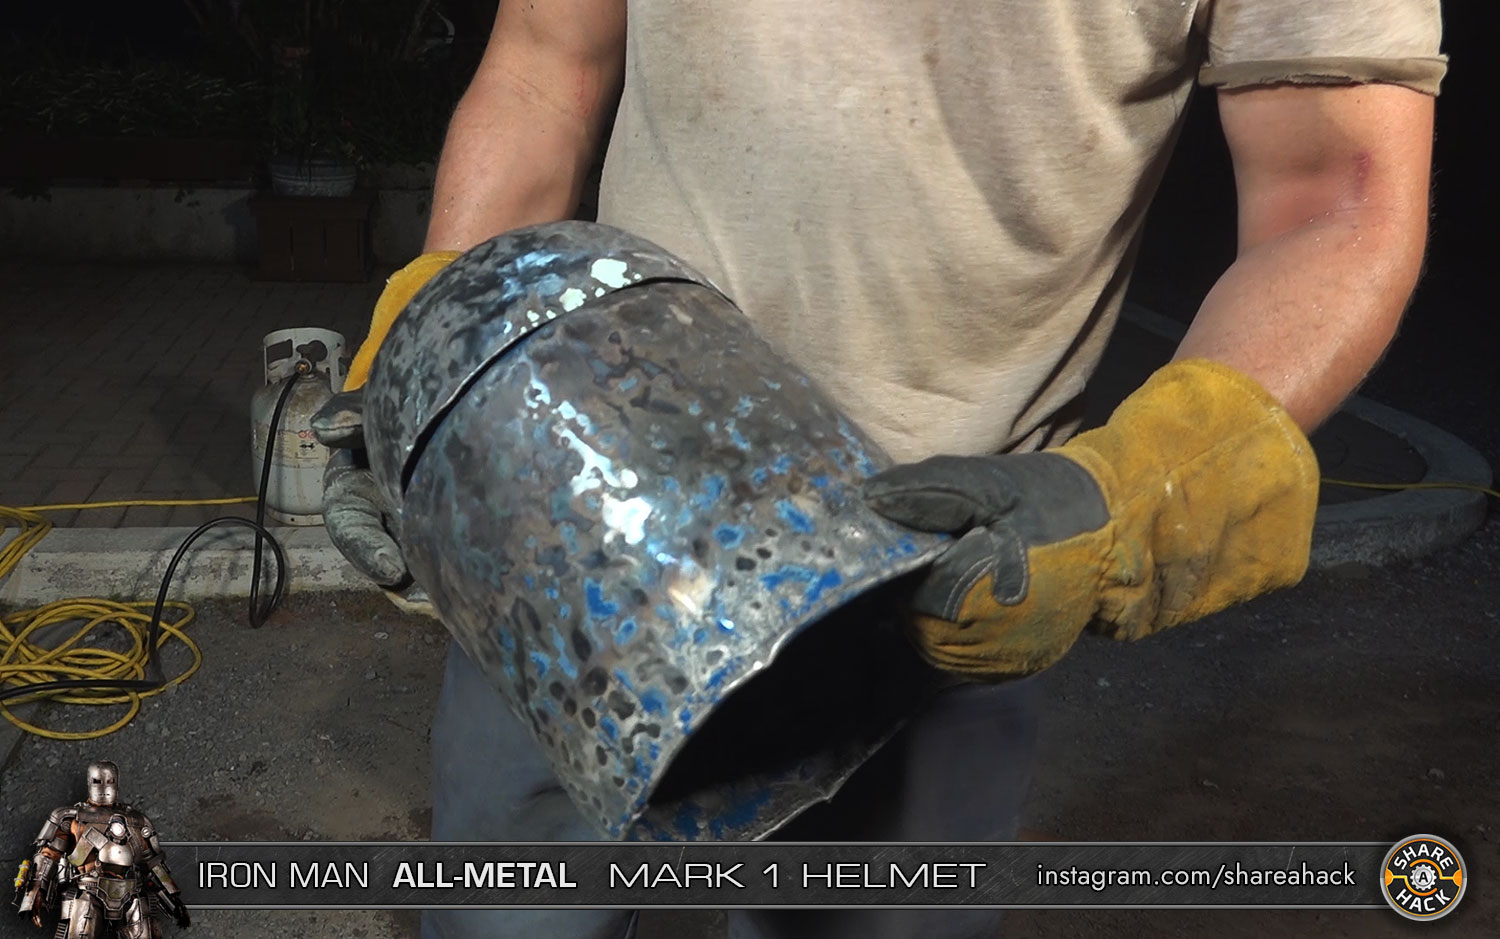 rk-1-helmet-diy-all-metal_ironman-mark1-mark-i_008.jpg